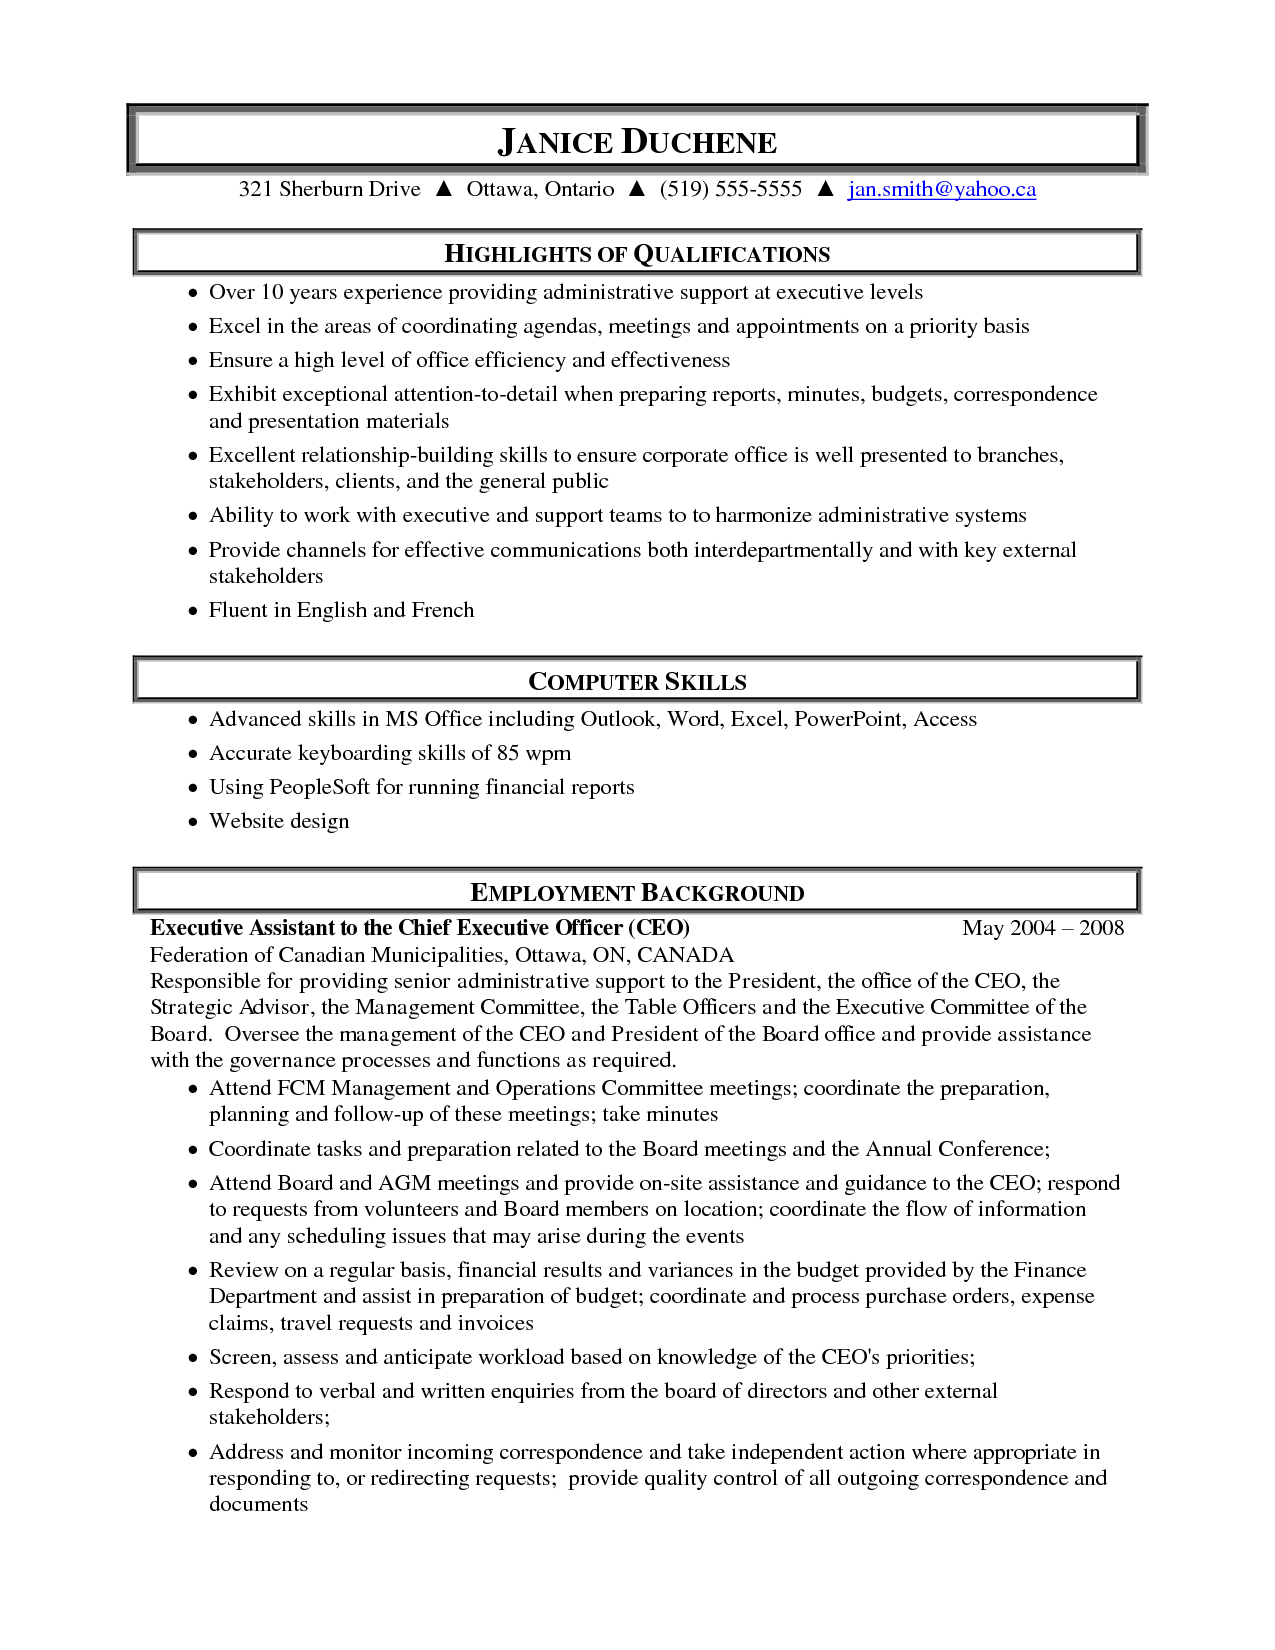 Medical Administrative Assistant Resume Samples Highlight Of